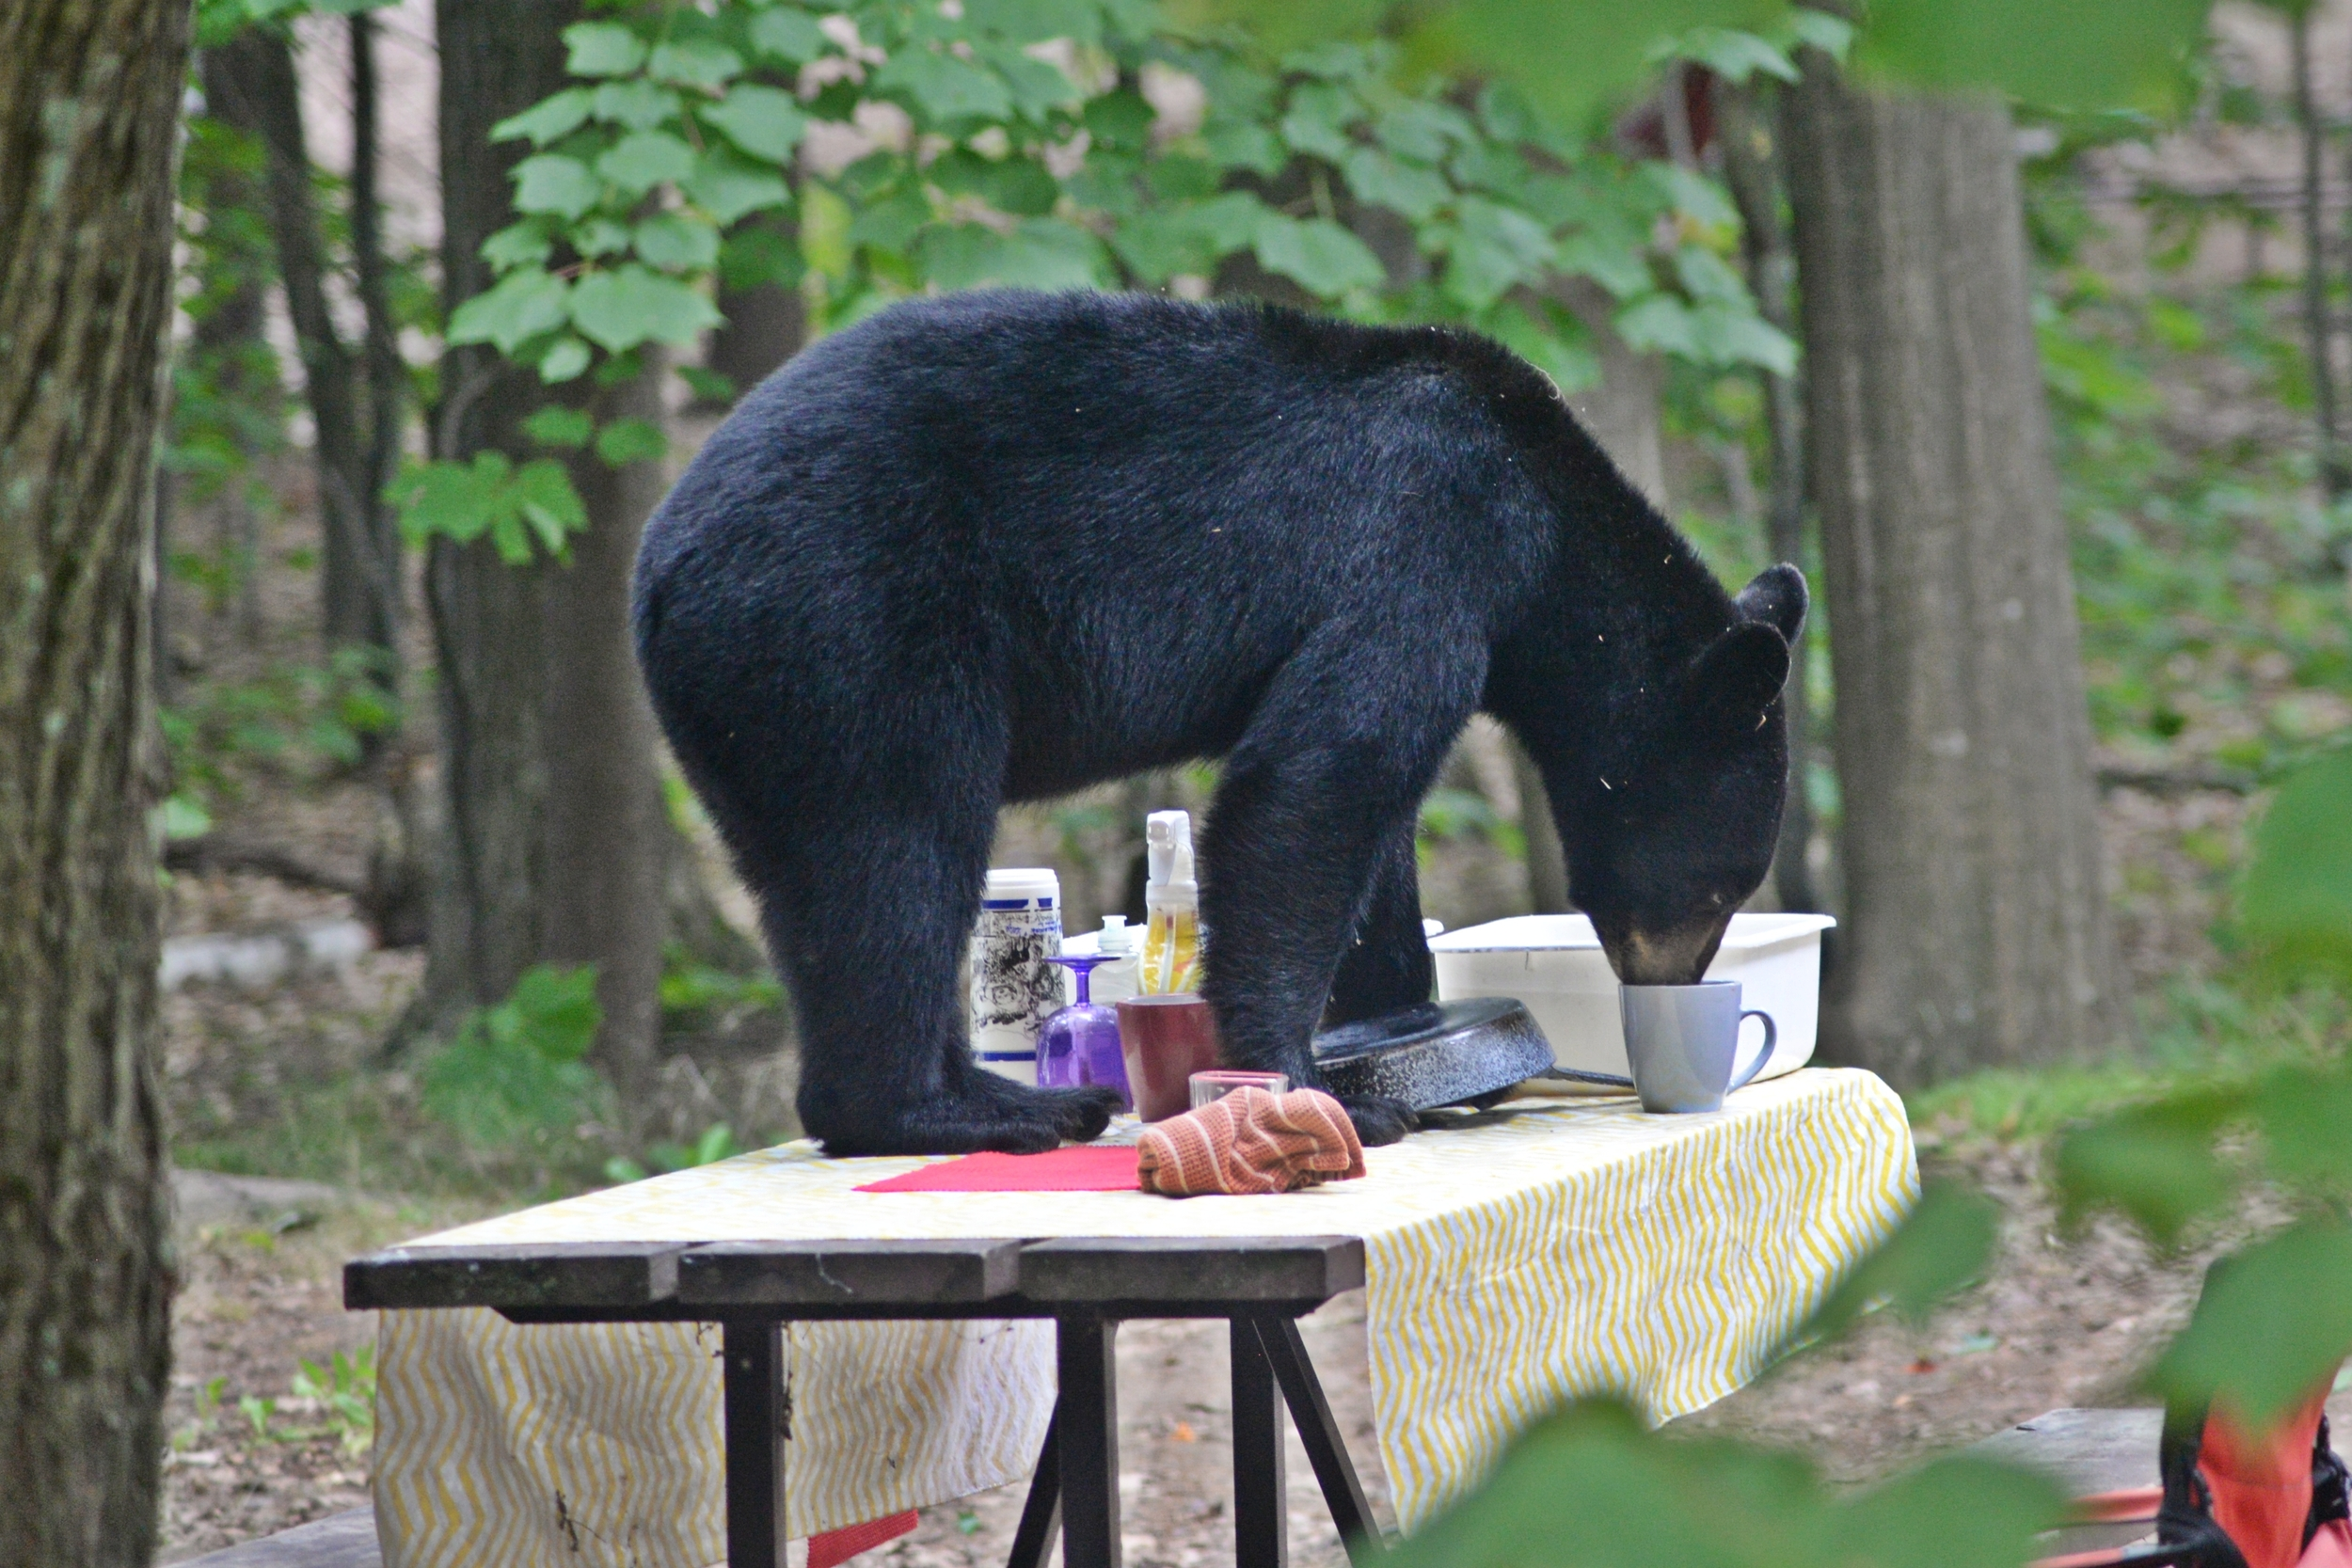 Clean dishes can attract bears! All attractants need to be put safely away when you are not on your site. Photo credit: Eric Wheeler.